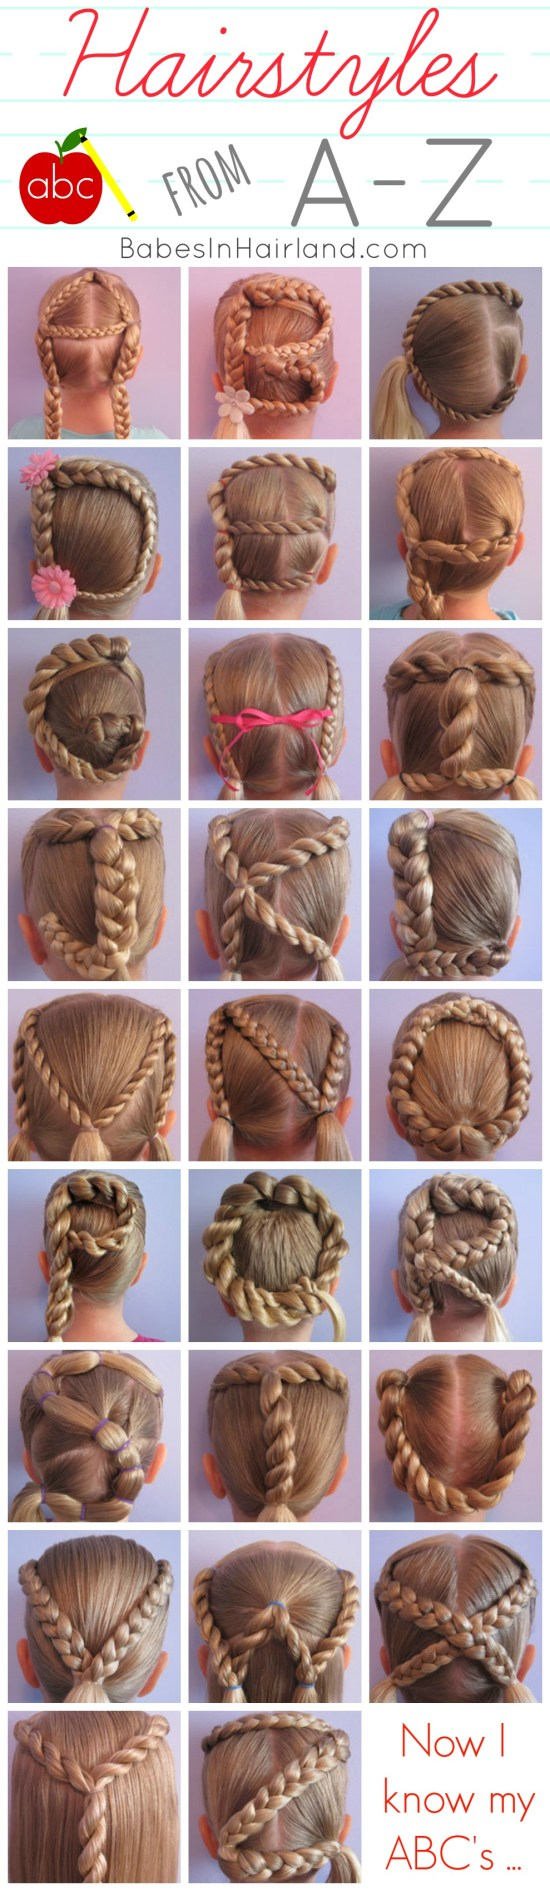 ABC Hairstyles from BabesInHairland.com